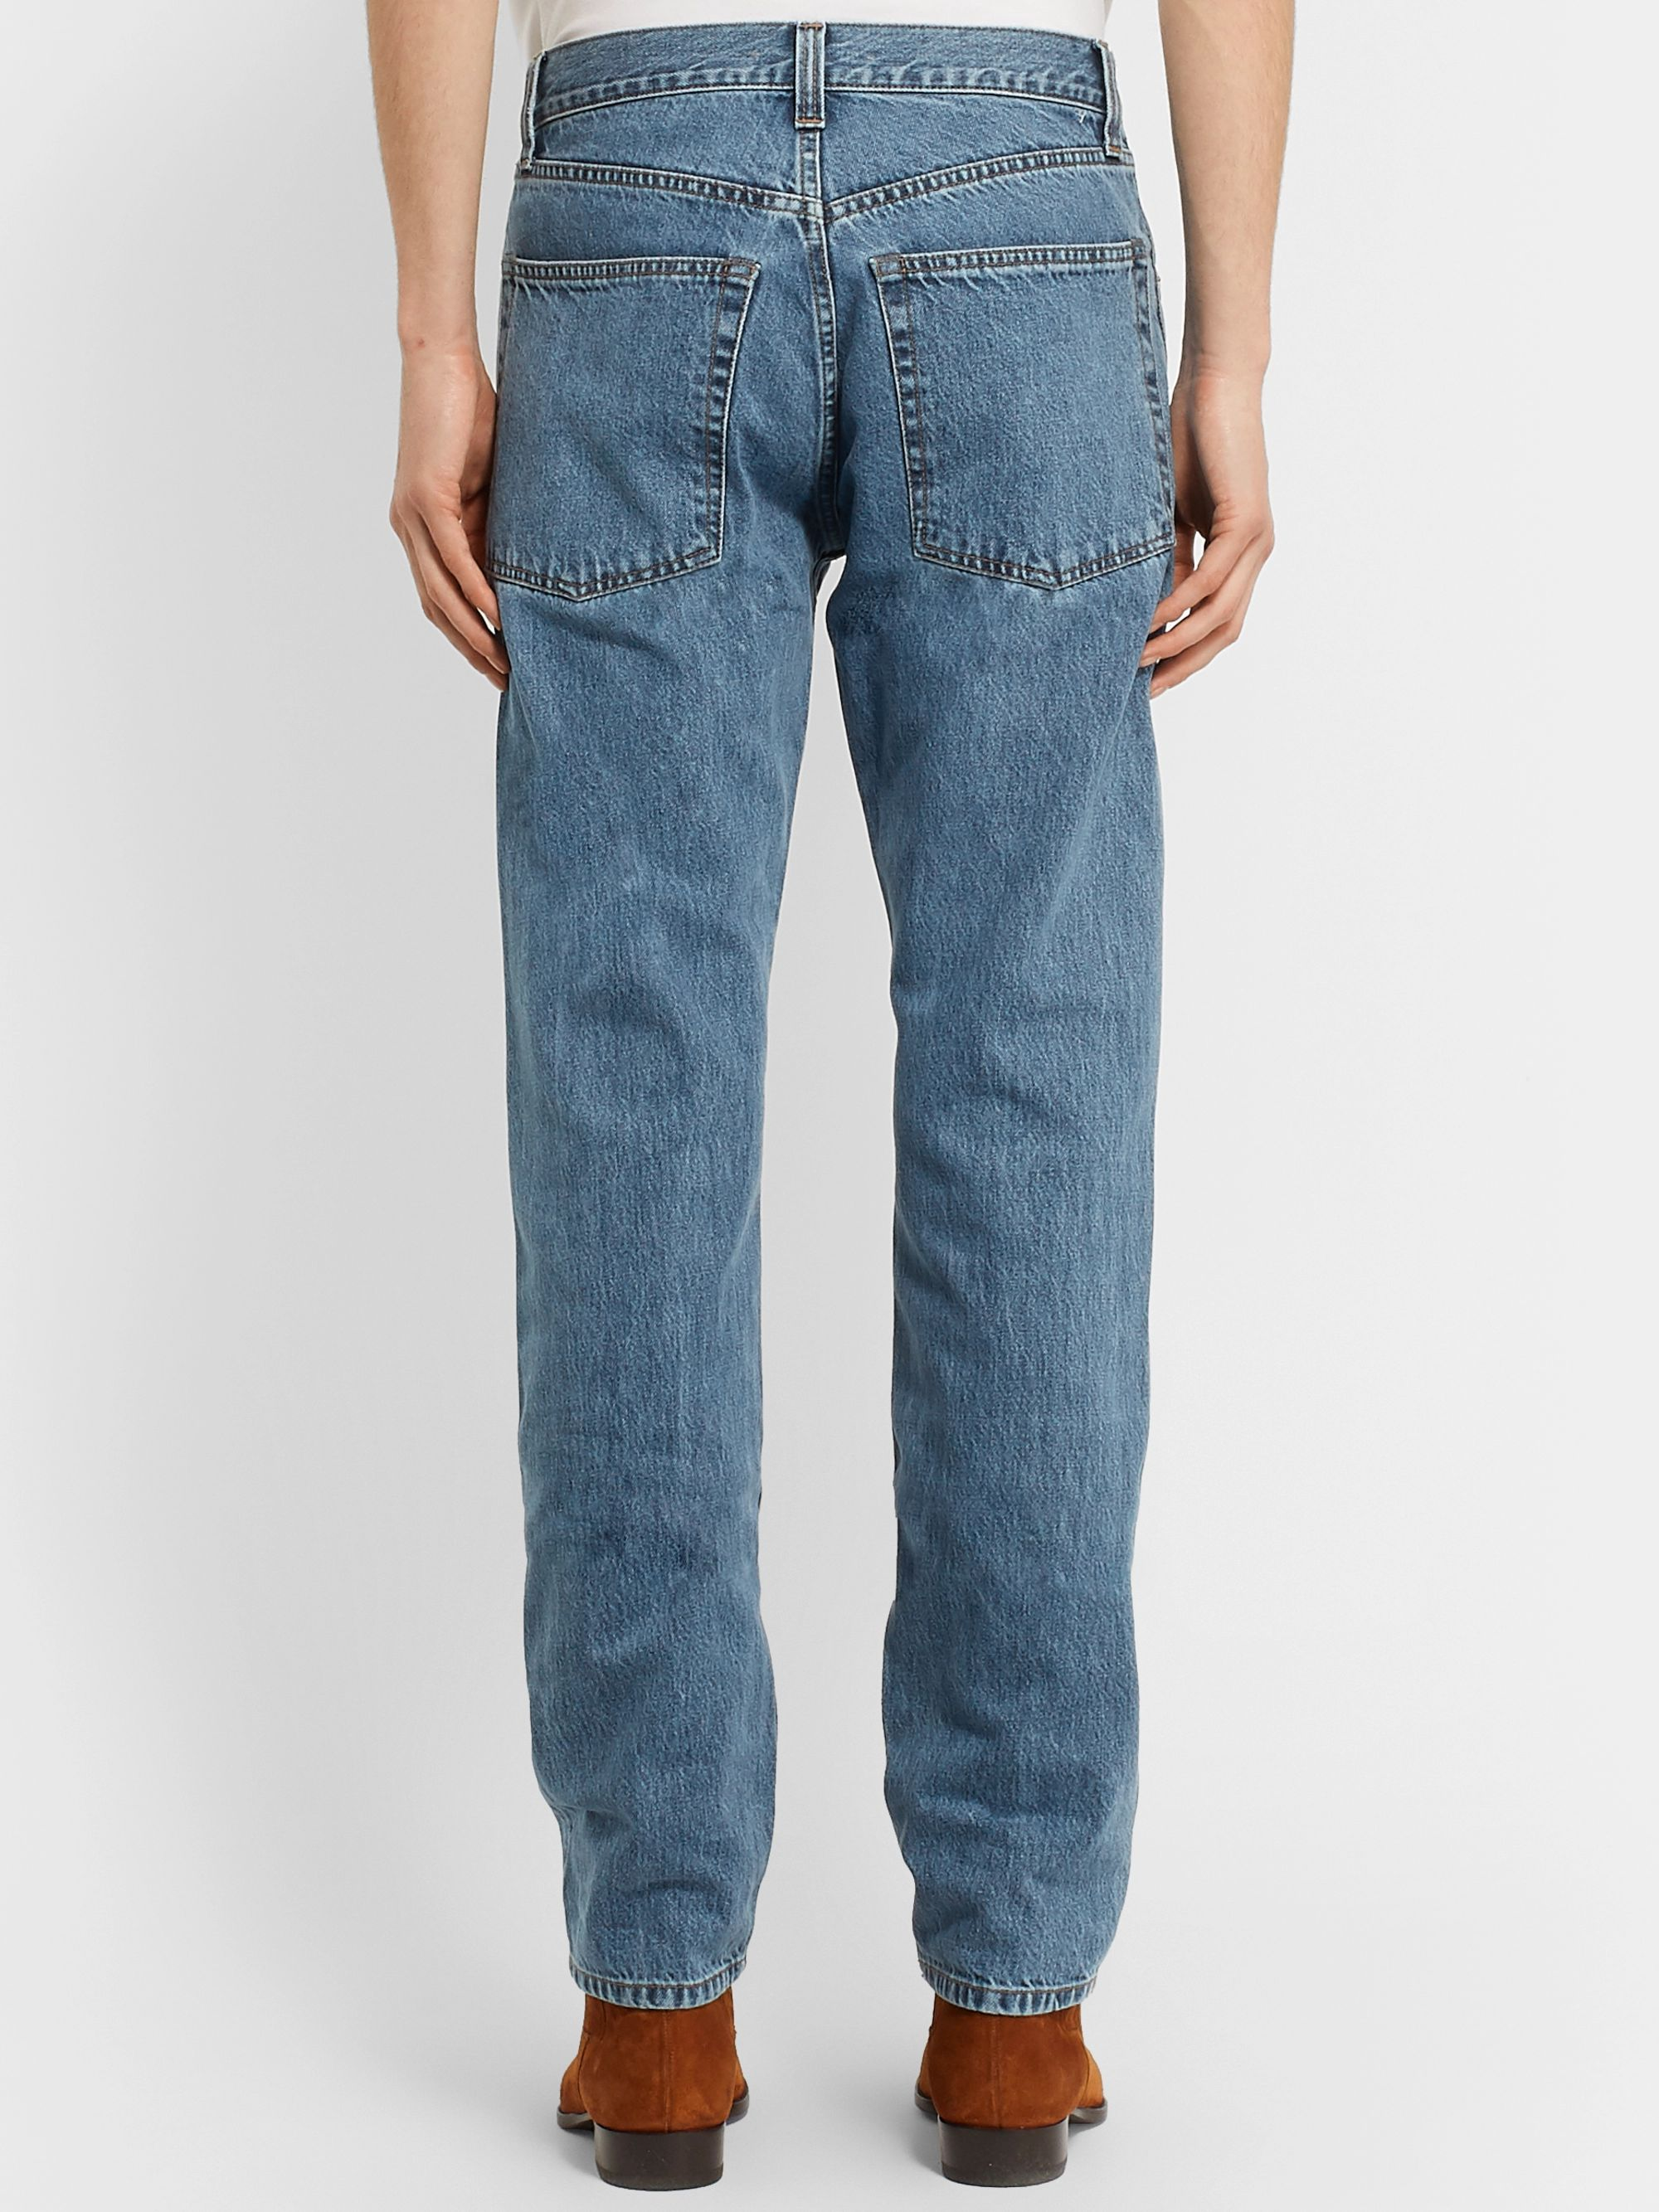 Helmut Lang Slim-Fit Denim Jeans